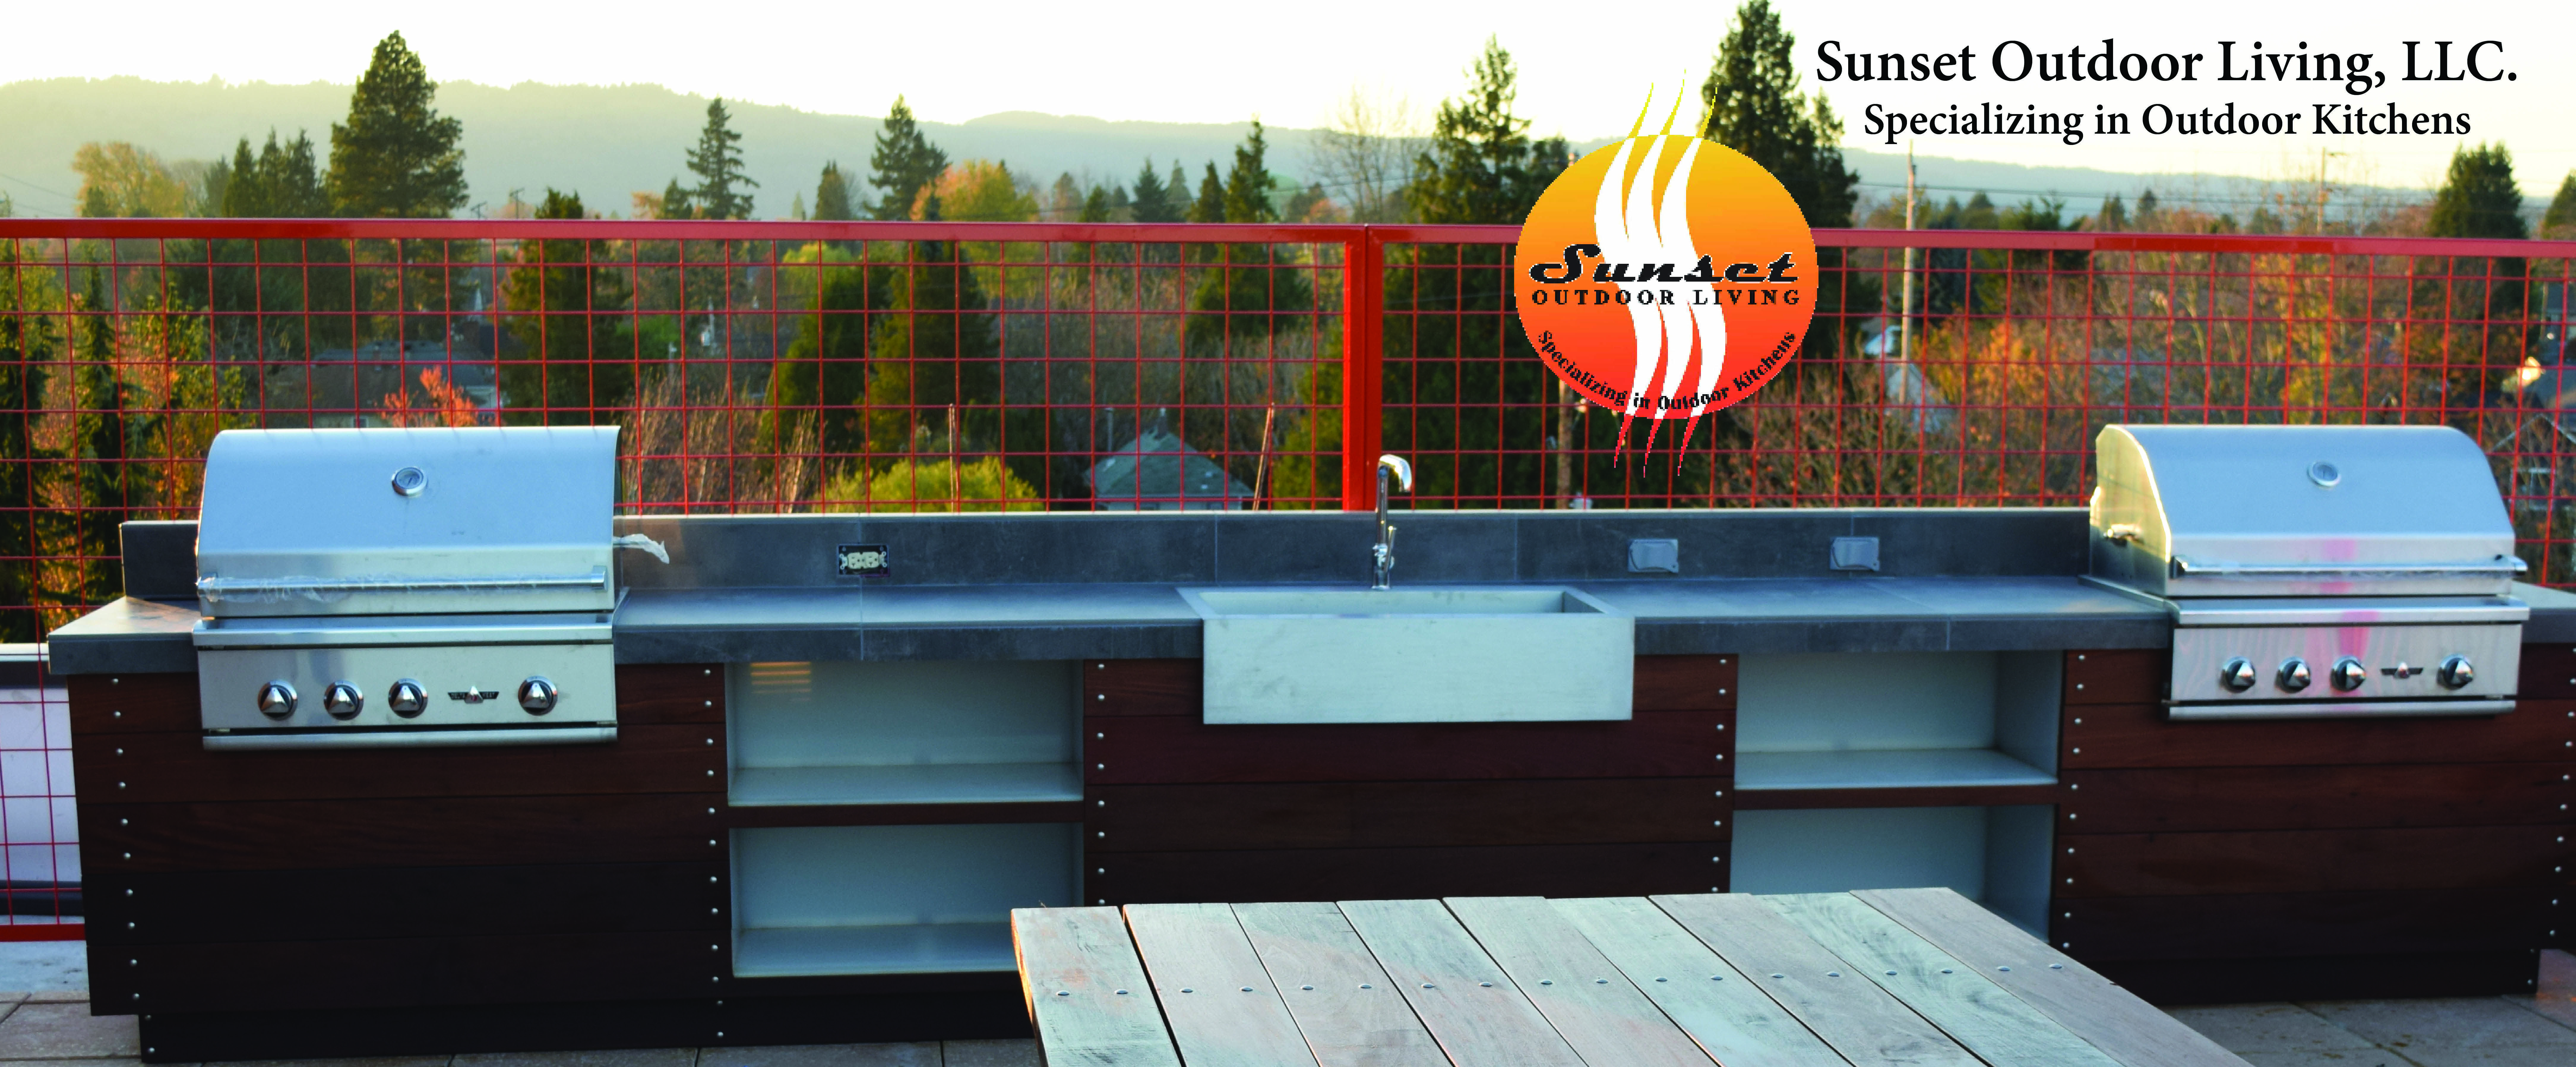 Portland Oregon Rooftop Apartment Outdoor Living Outdoor Kitchen Custom Created By Sunset Outdoor Living Outdoor Living Ipe Wood Outdoor Kitchen